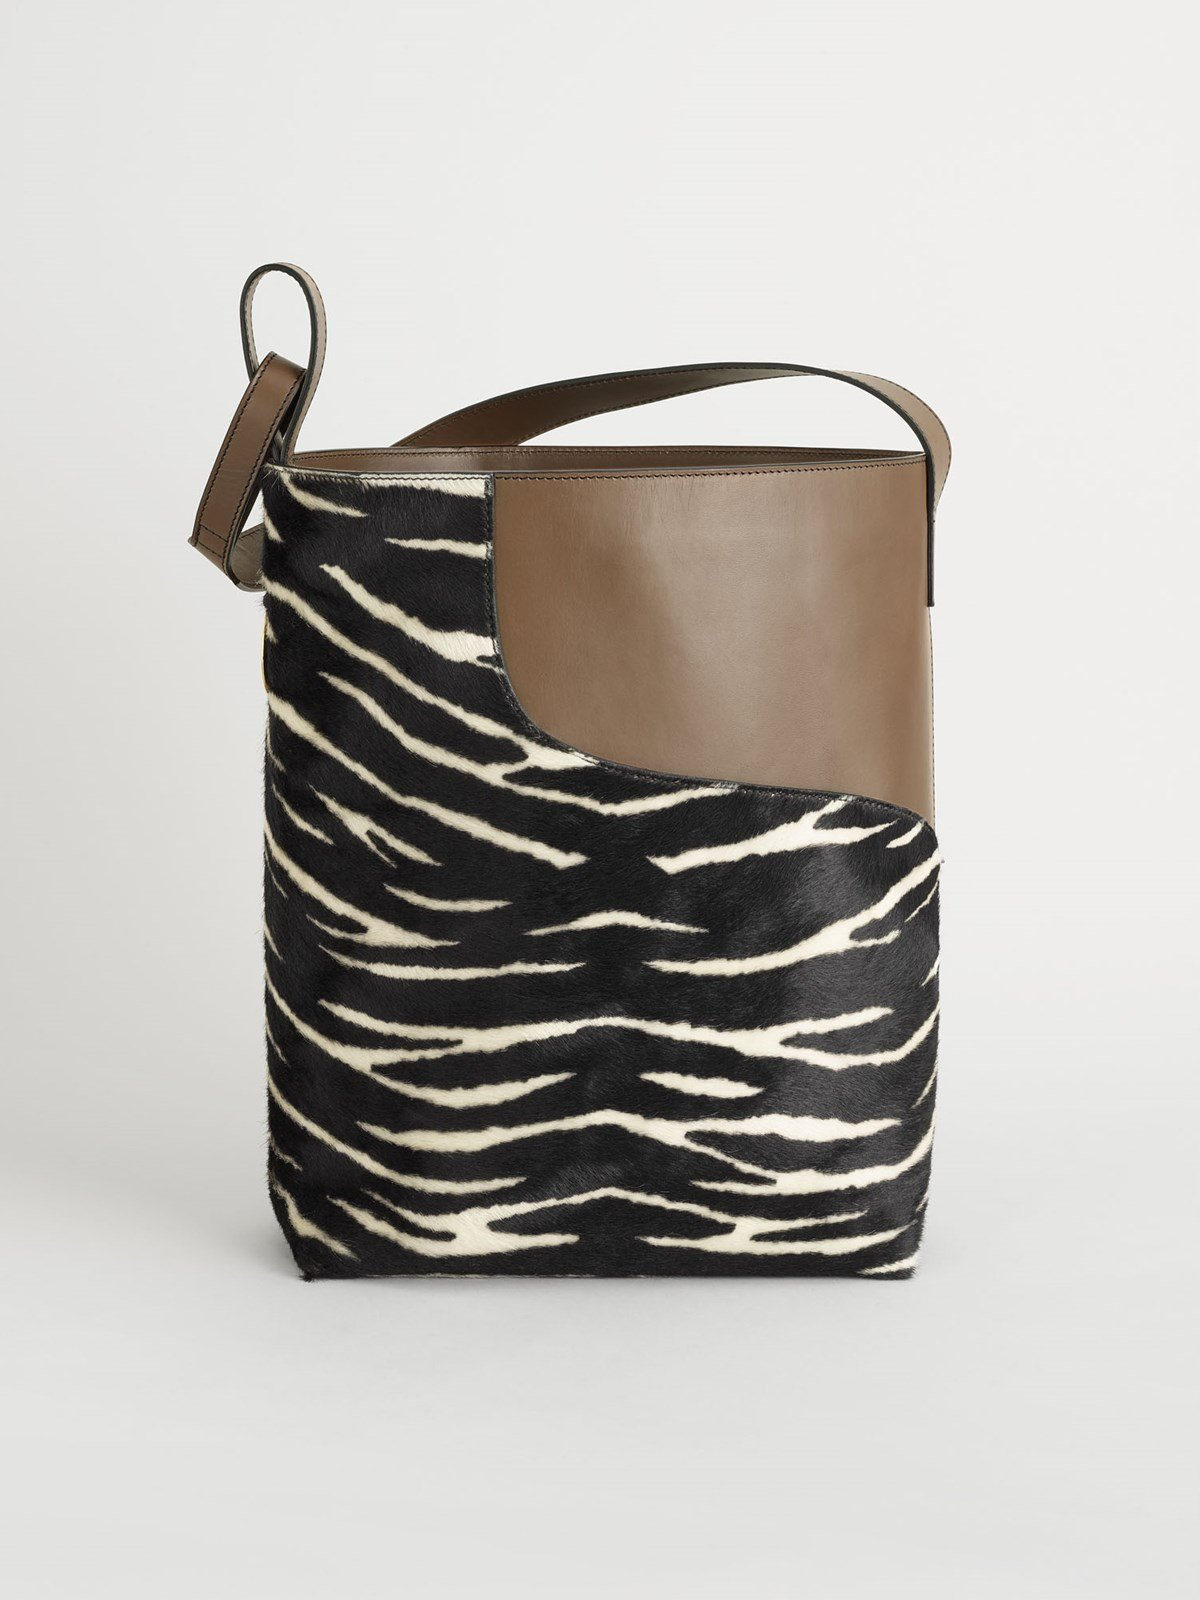 Pienza Black/Khaki Brown Printed Zebra Pony/Vacchetta